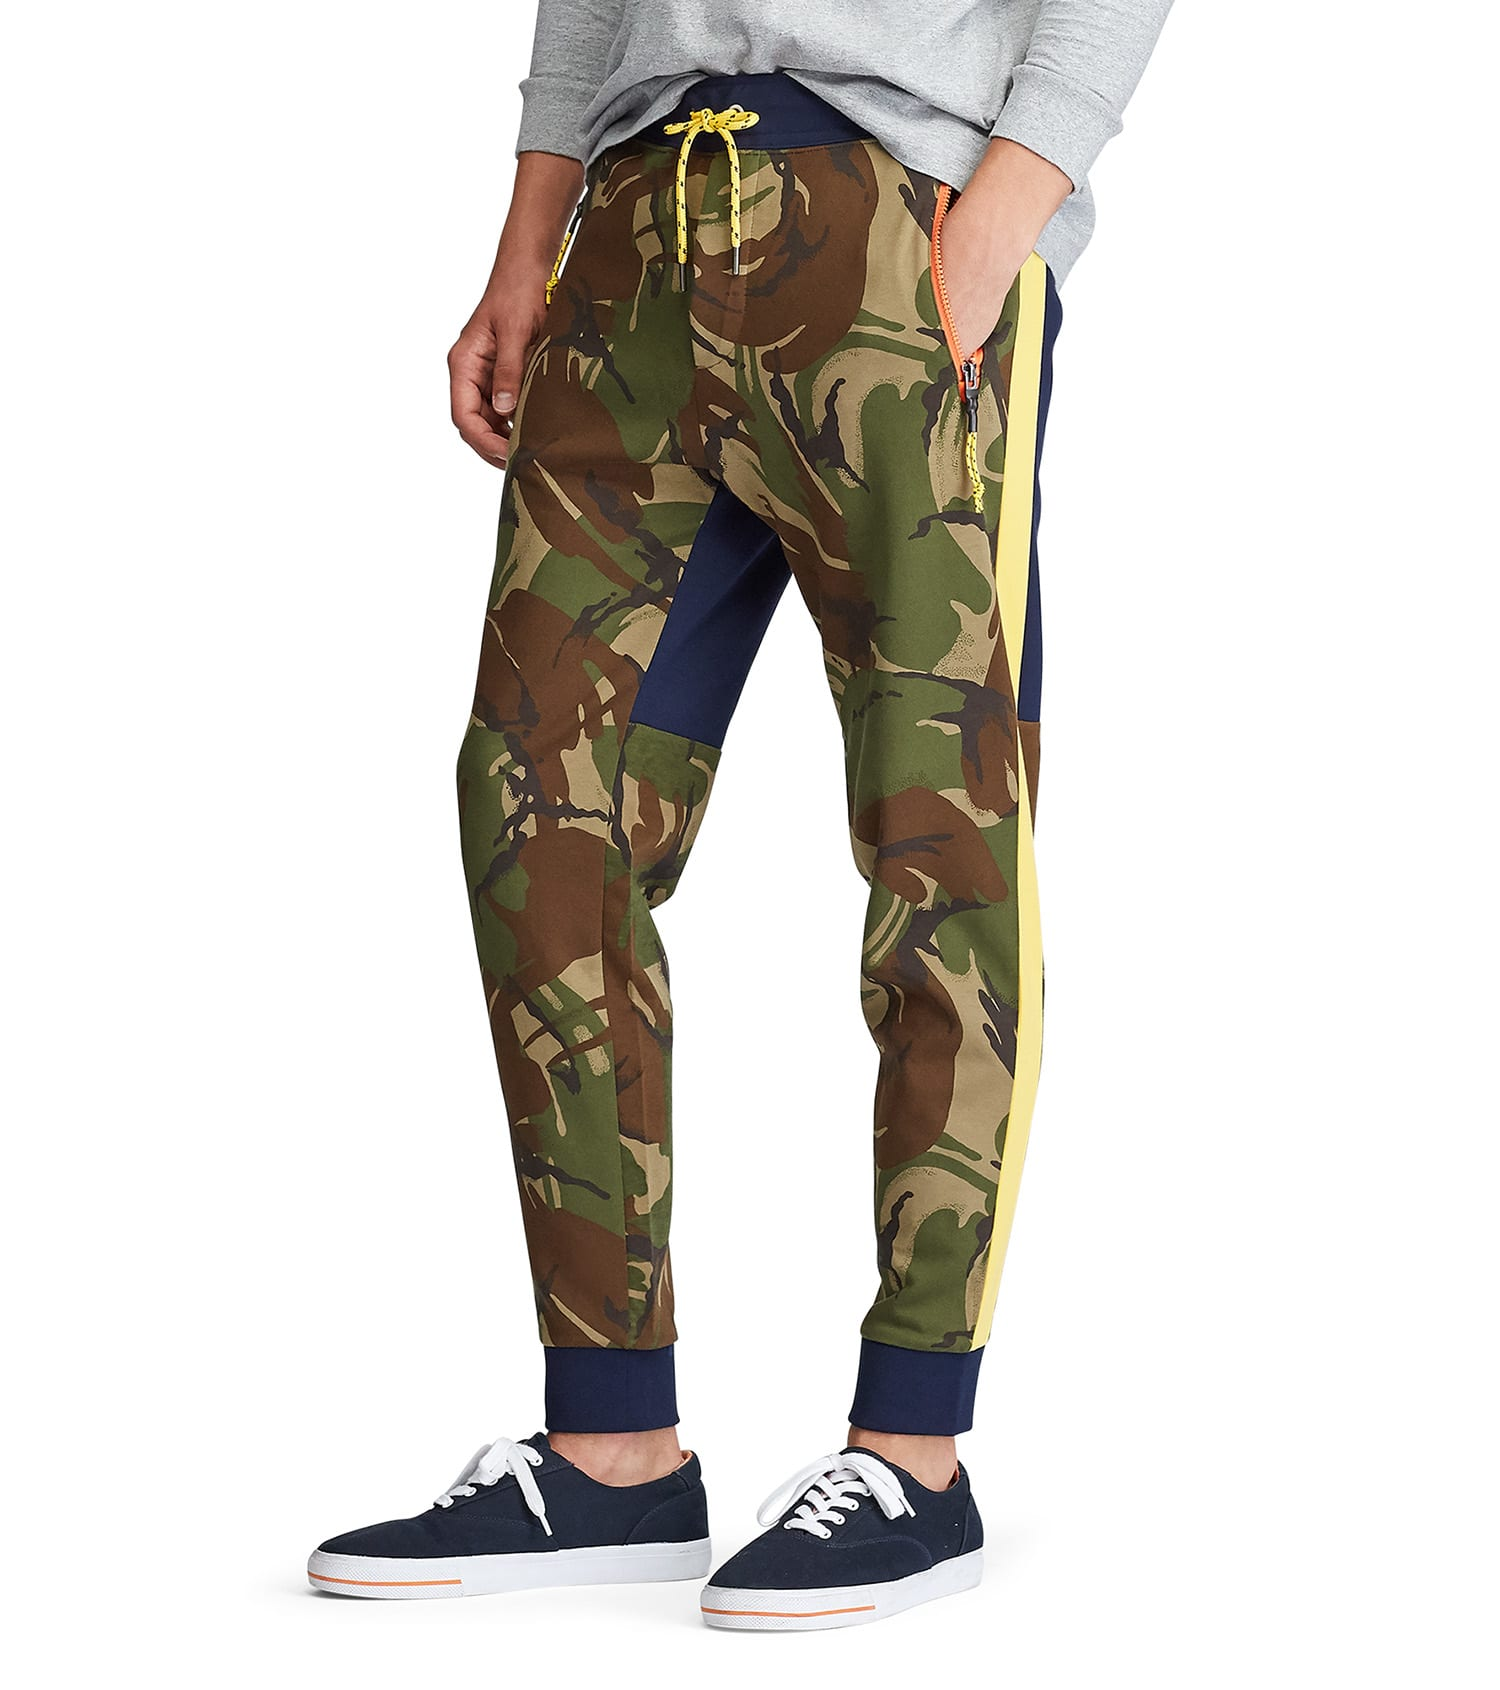 the latest discount shop exquisite style Camo Double-Knit Jogger